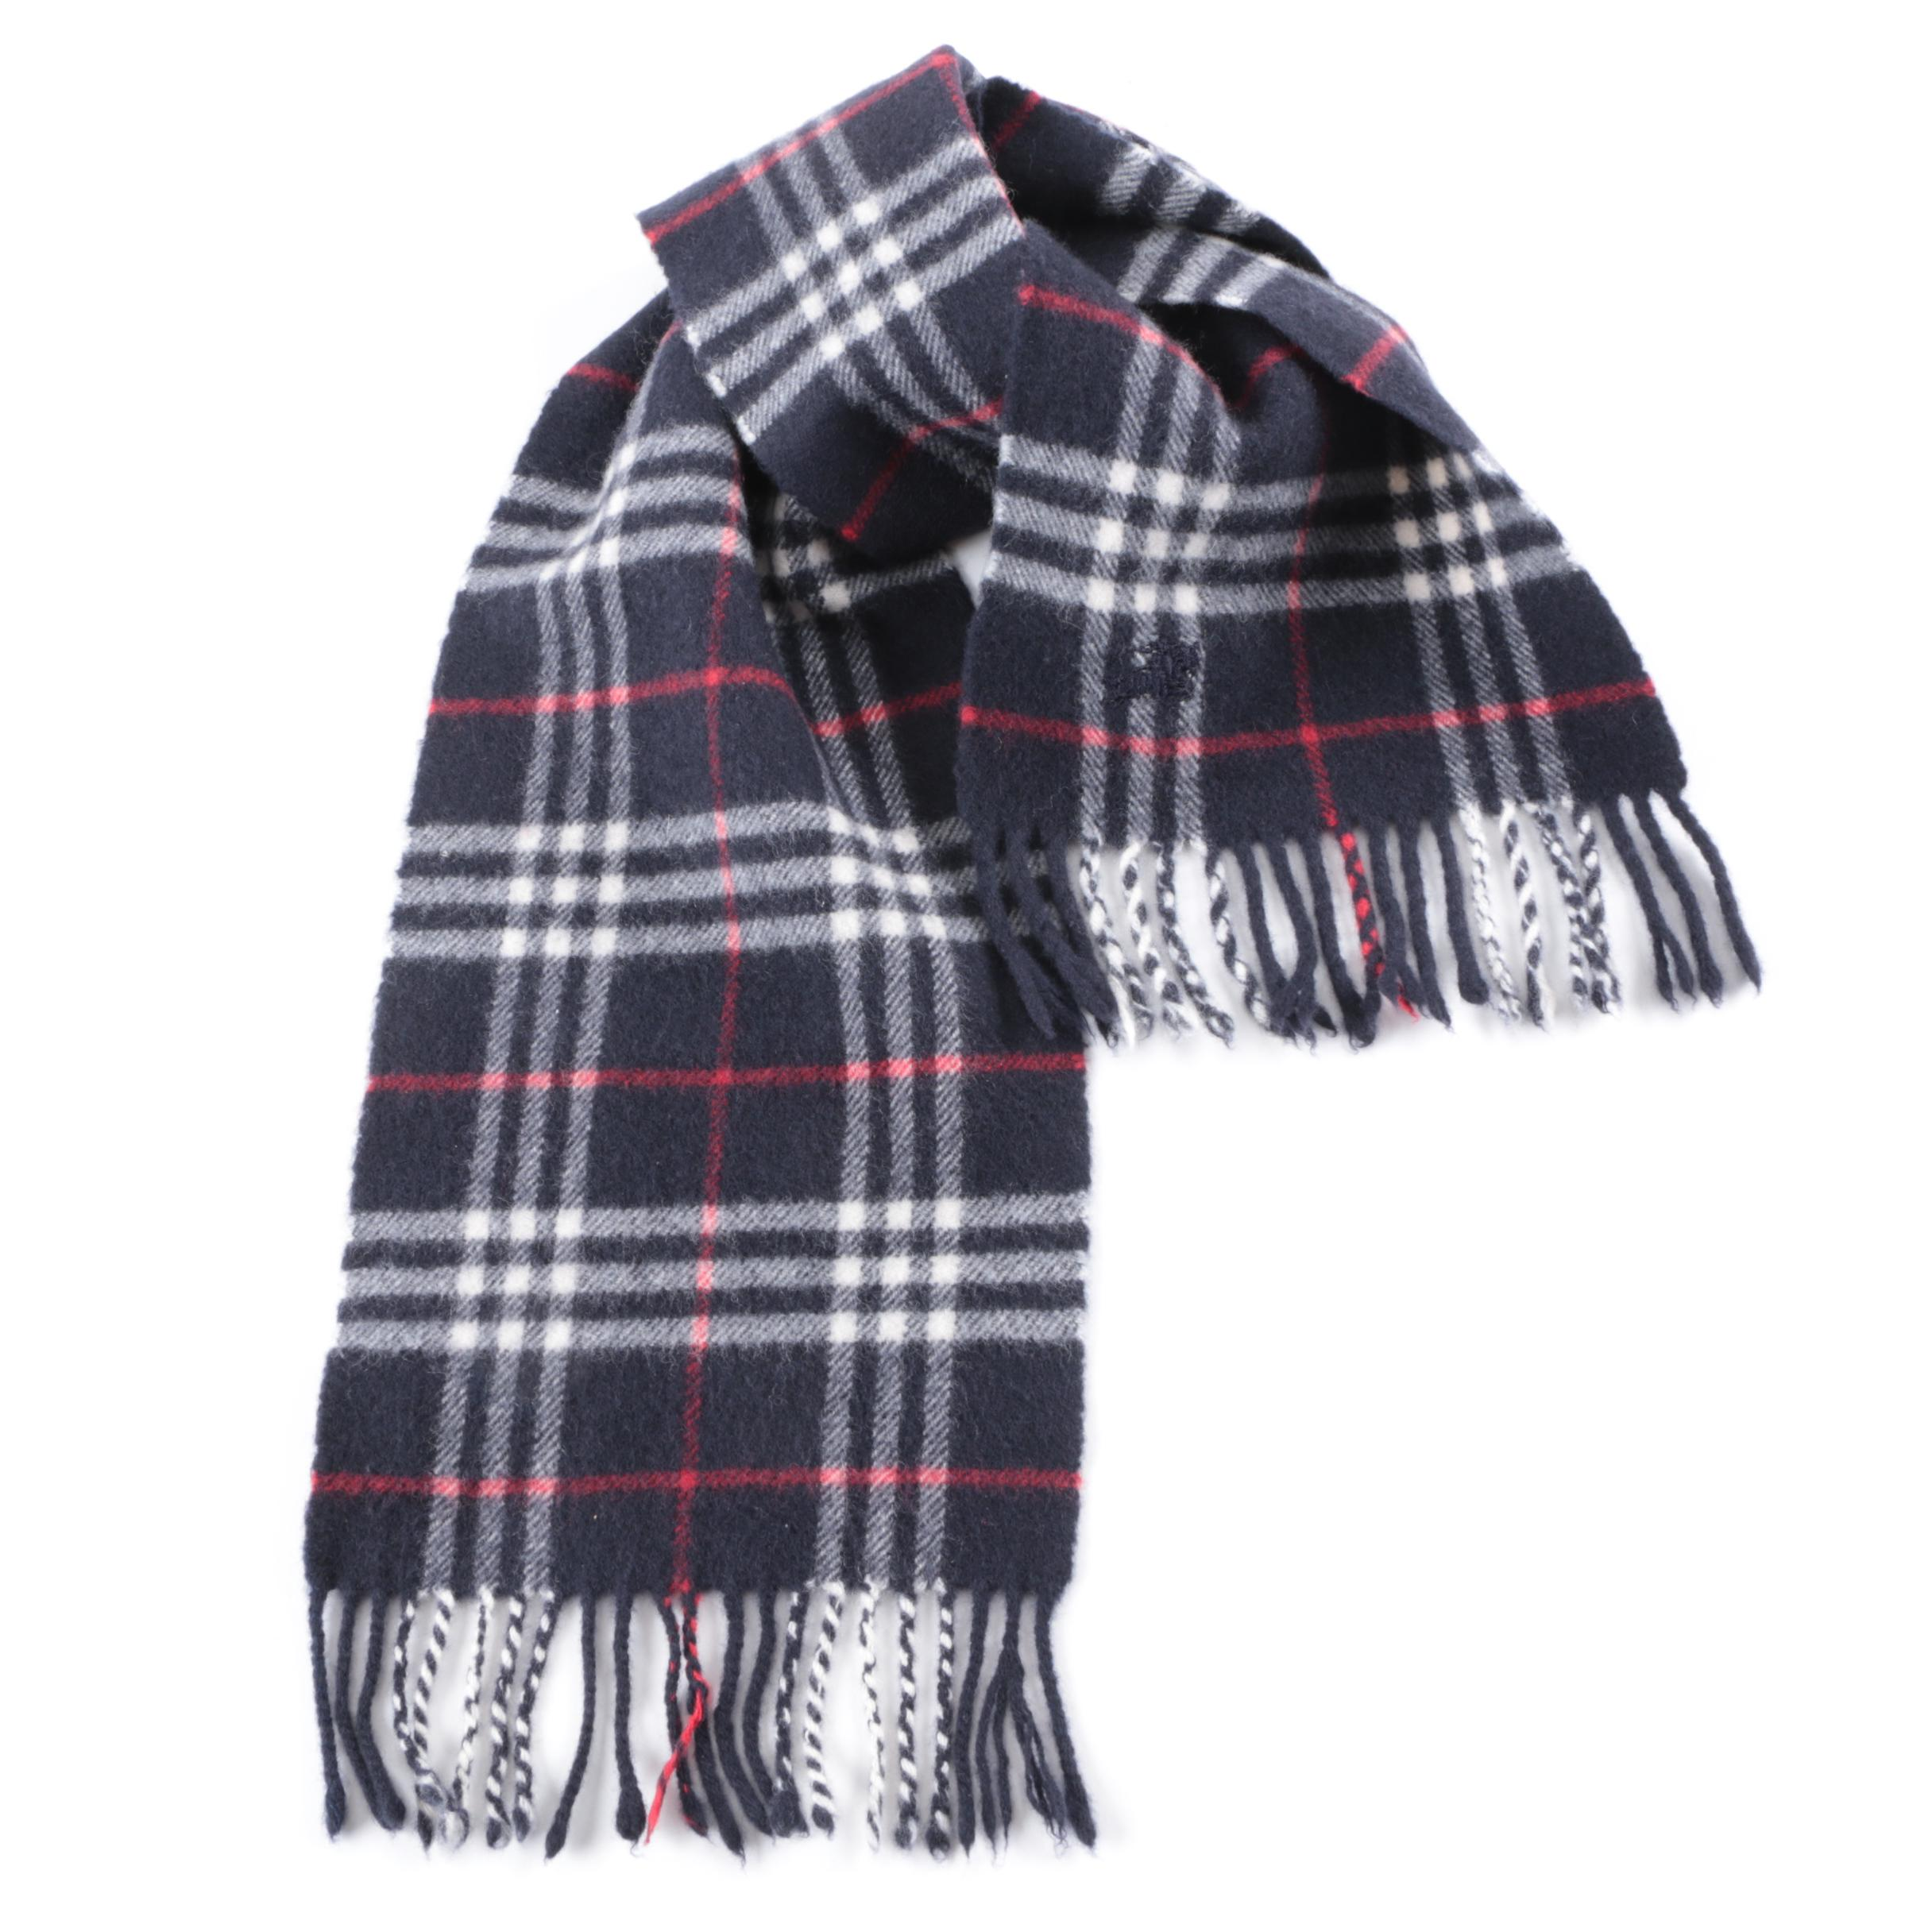 6421f0498f06 ... aliexpress burberry london merino wool and cashmere scarf ee28f 2d52e